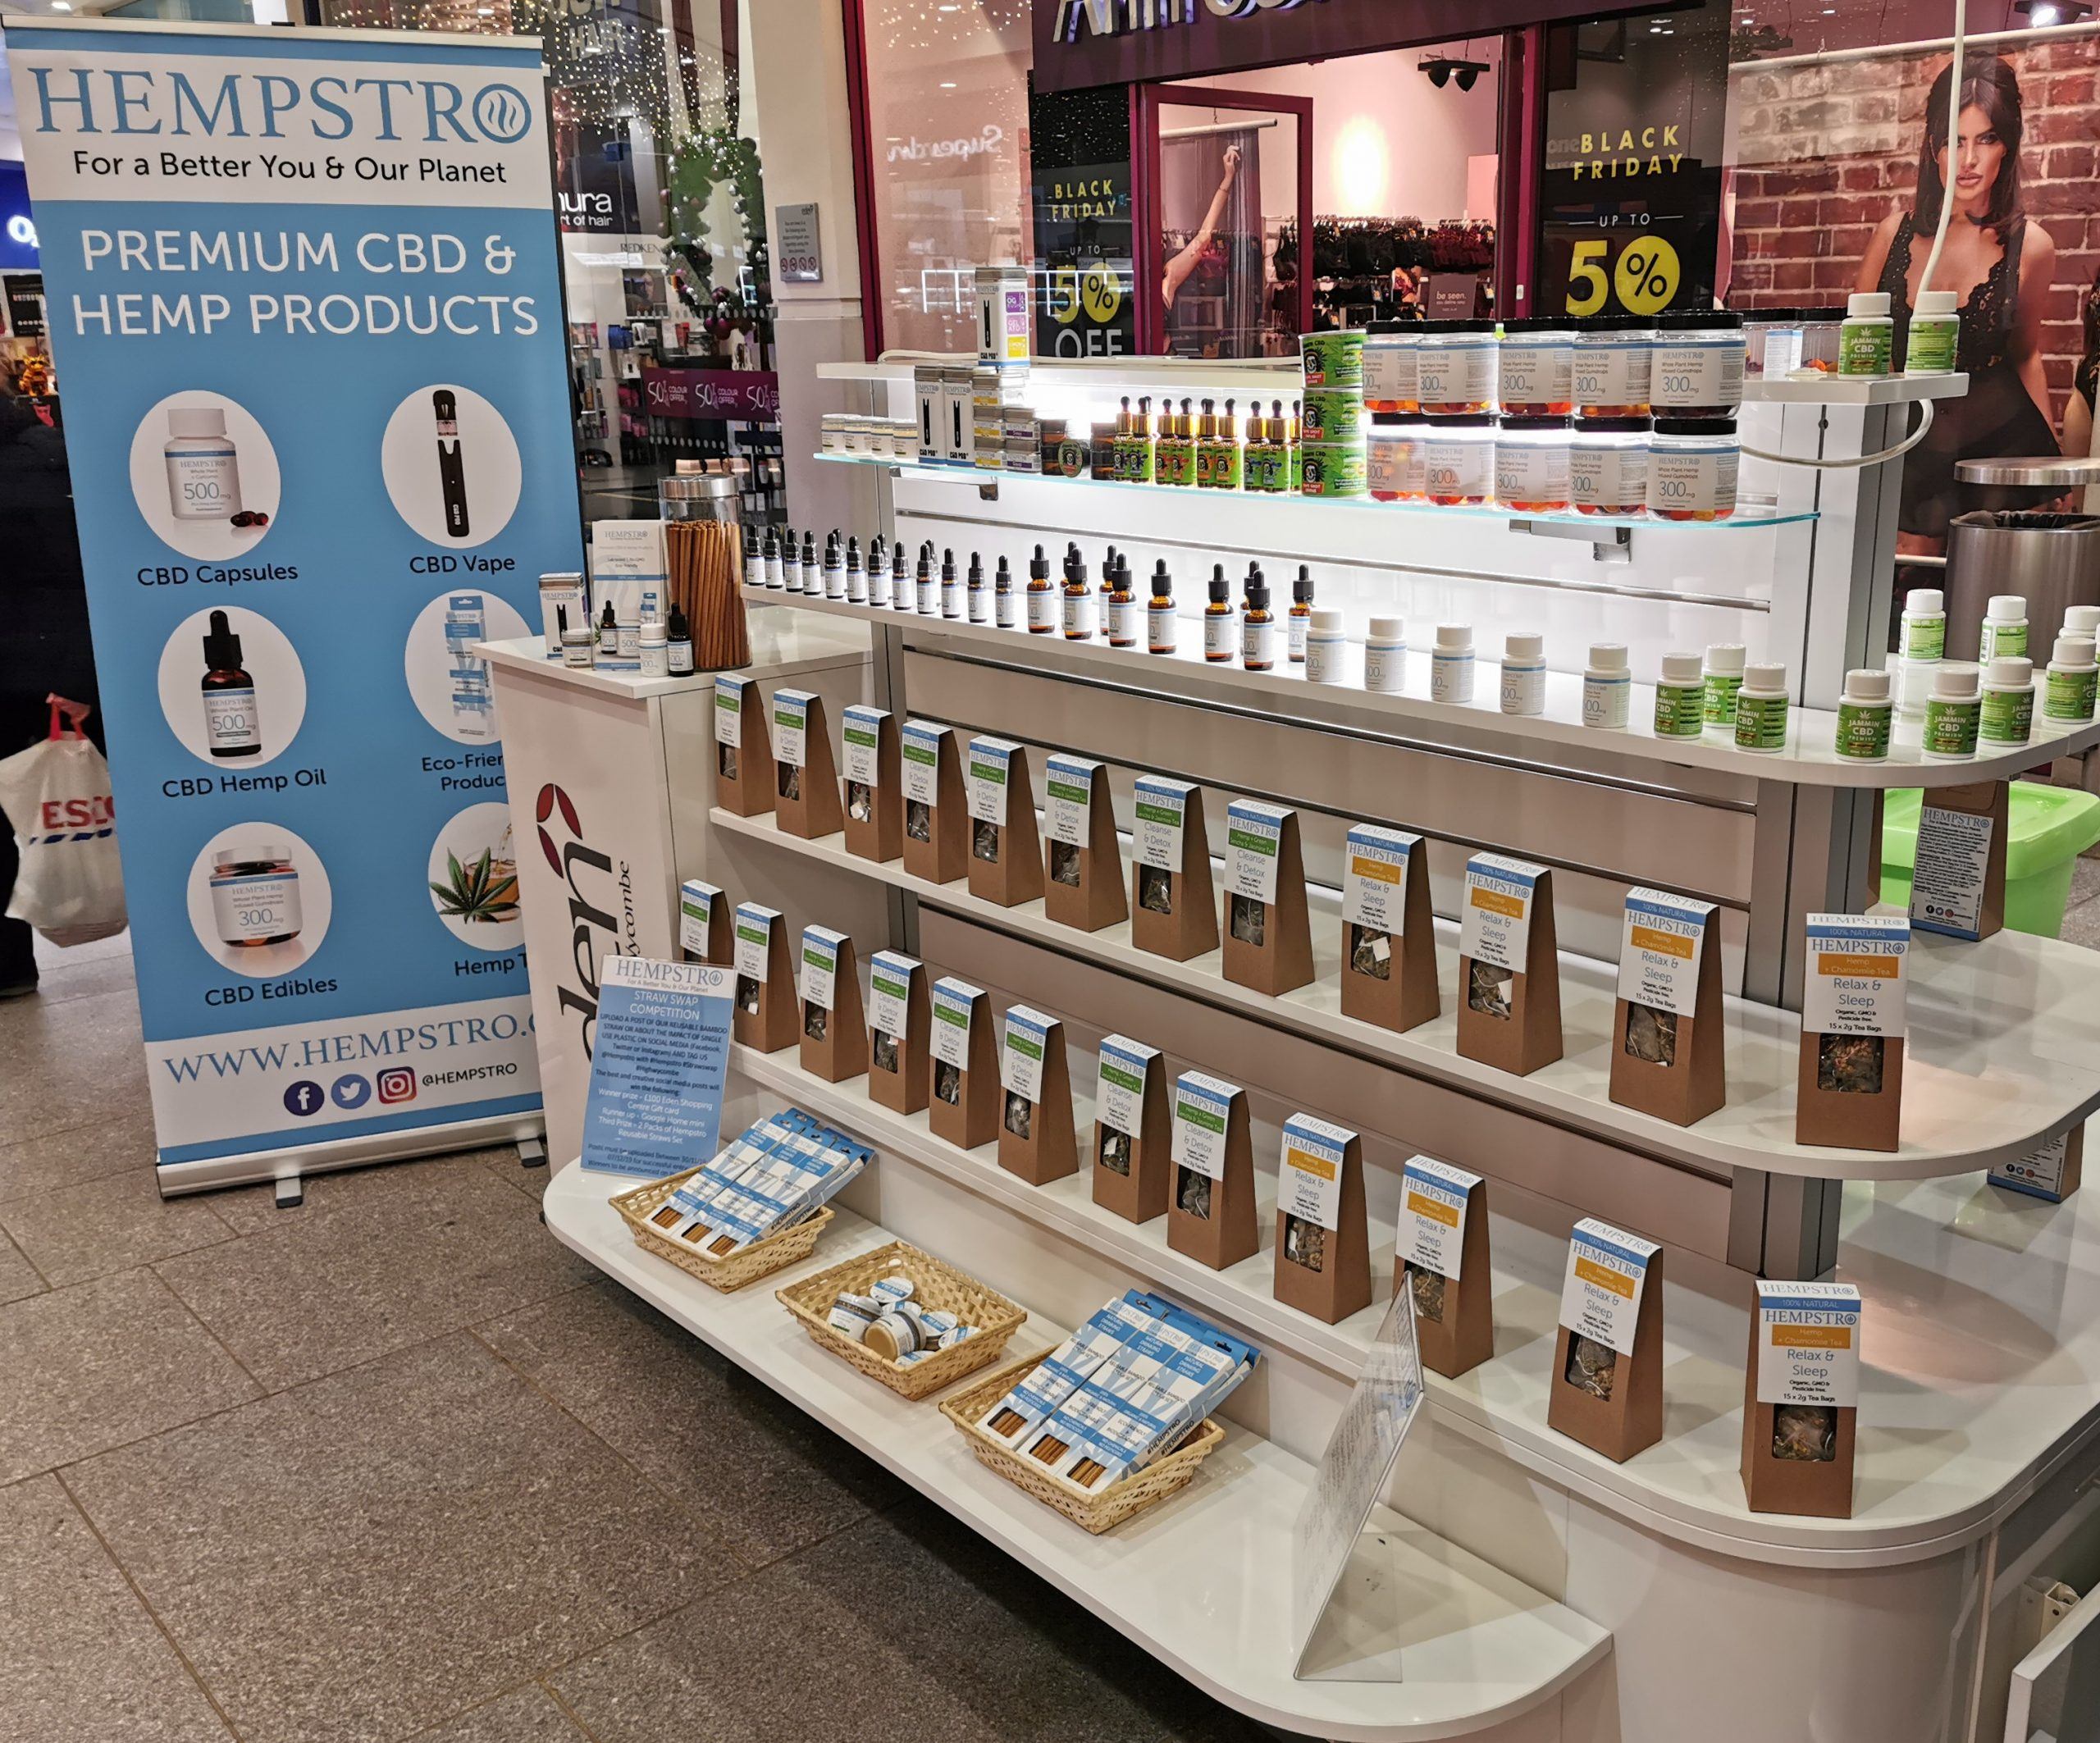 A CBD oil and Supplement kiosk opens up in Eden Shopping Centre High Wycombe.